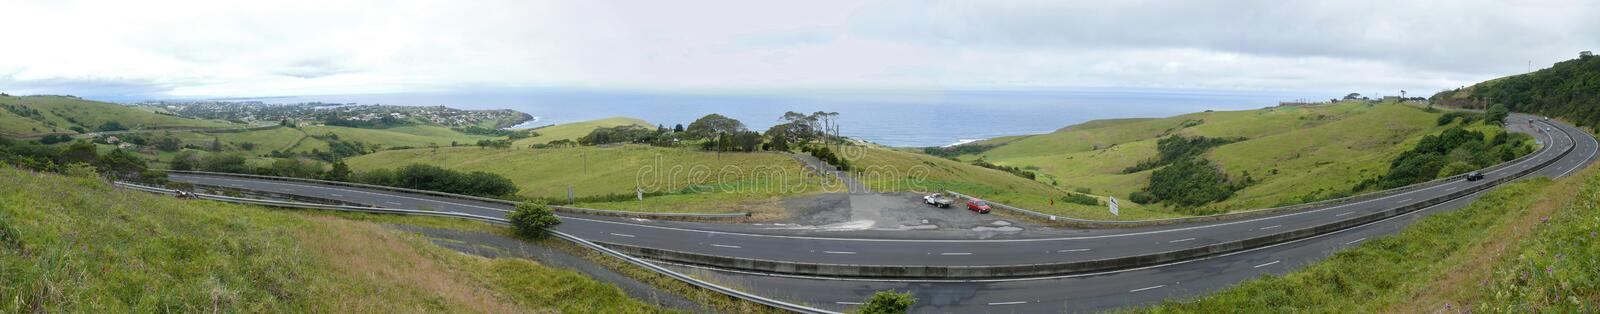 Panorama of ocean with road.